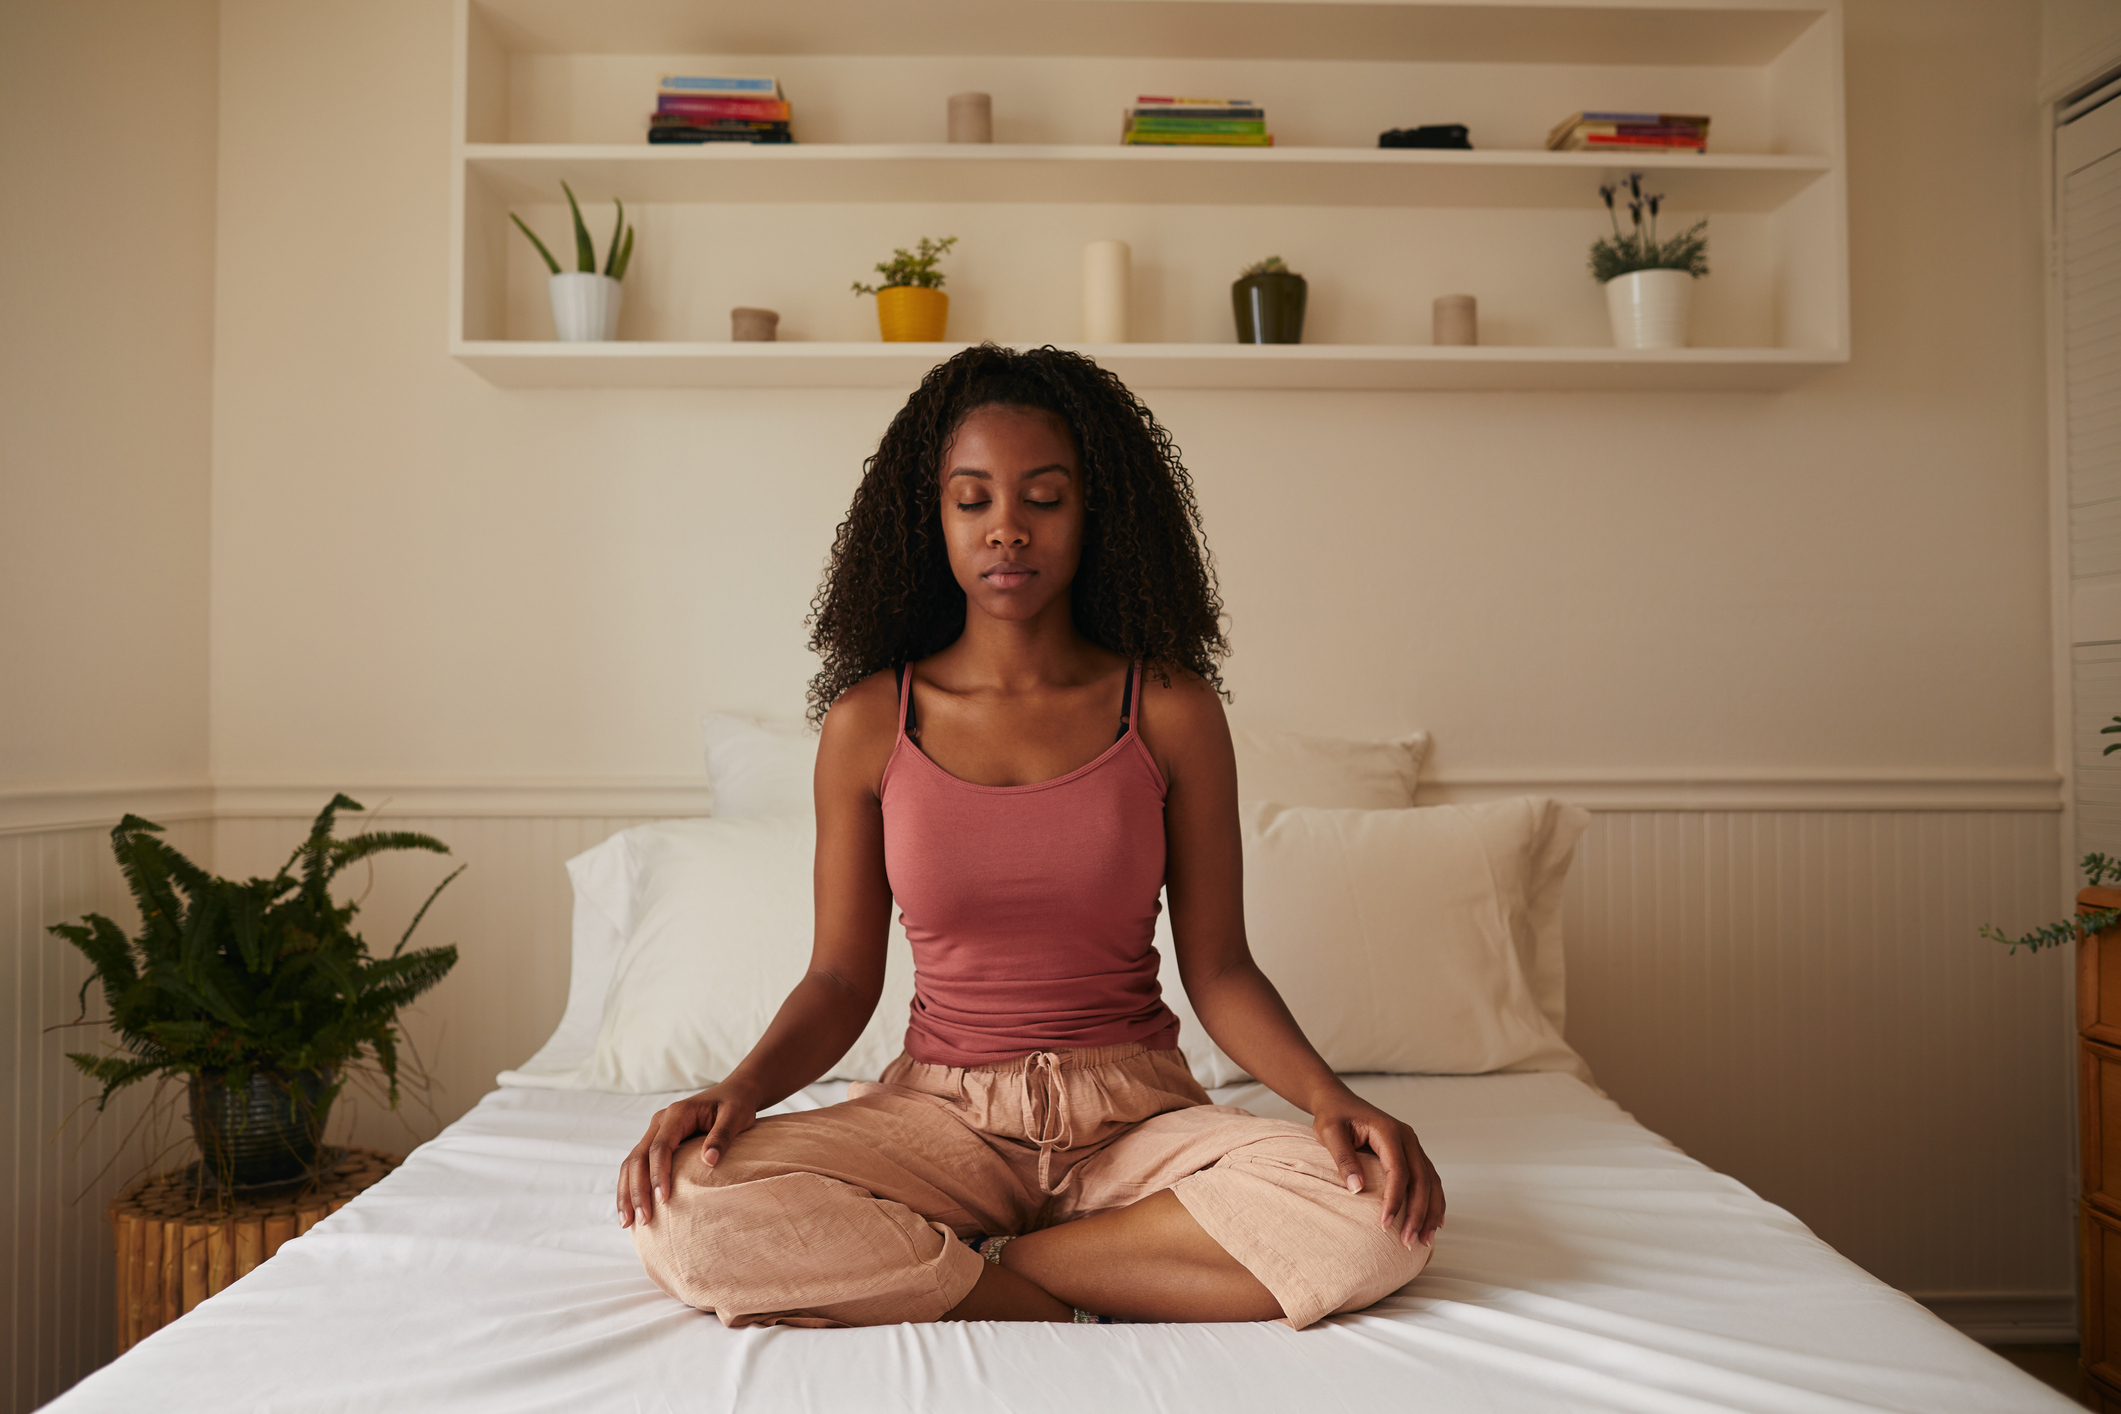 Thumbnail for Spiraling Thoughts Keeping You Up at Night? Try This Breathwork Exercise for Sleep